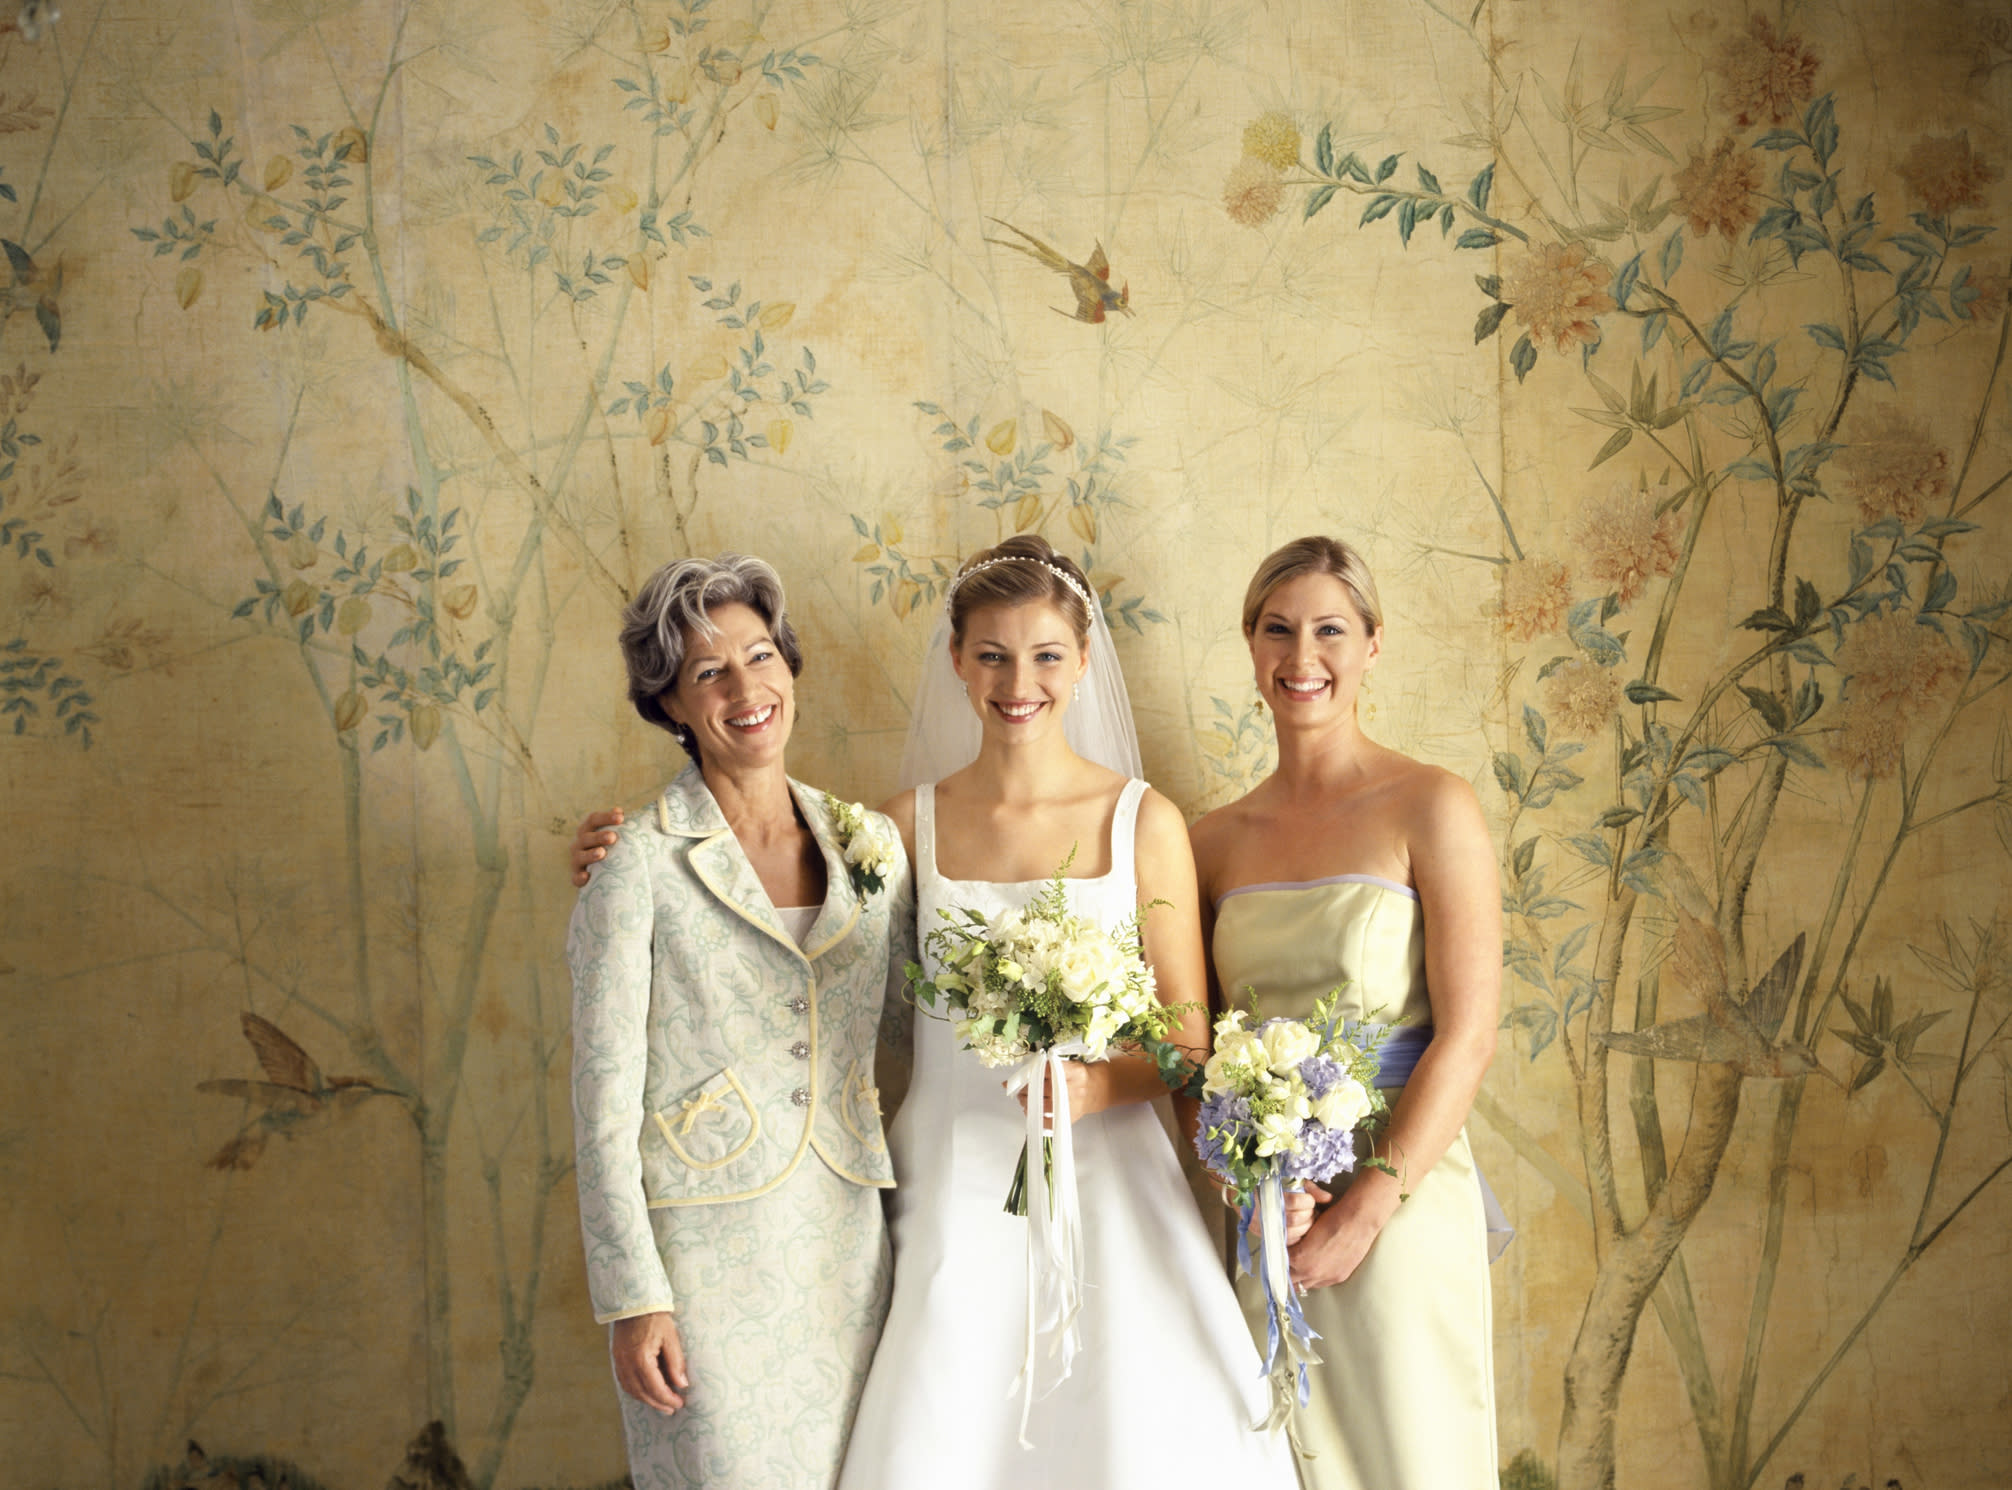 Flattering Mother Of The Bride Dresses: 10 Mother Of The Bride Dresses For Every Style And Budget